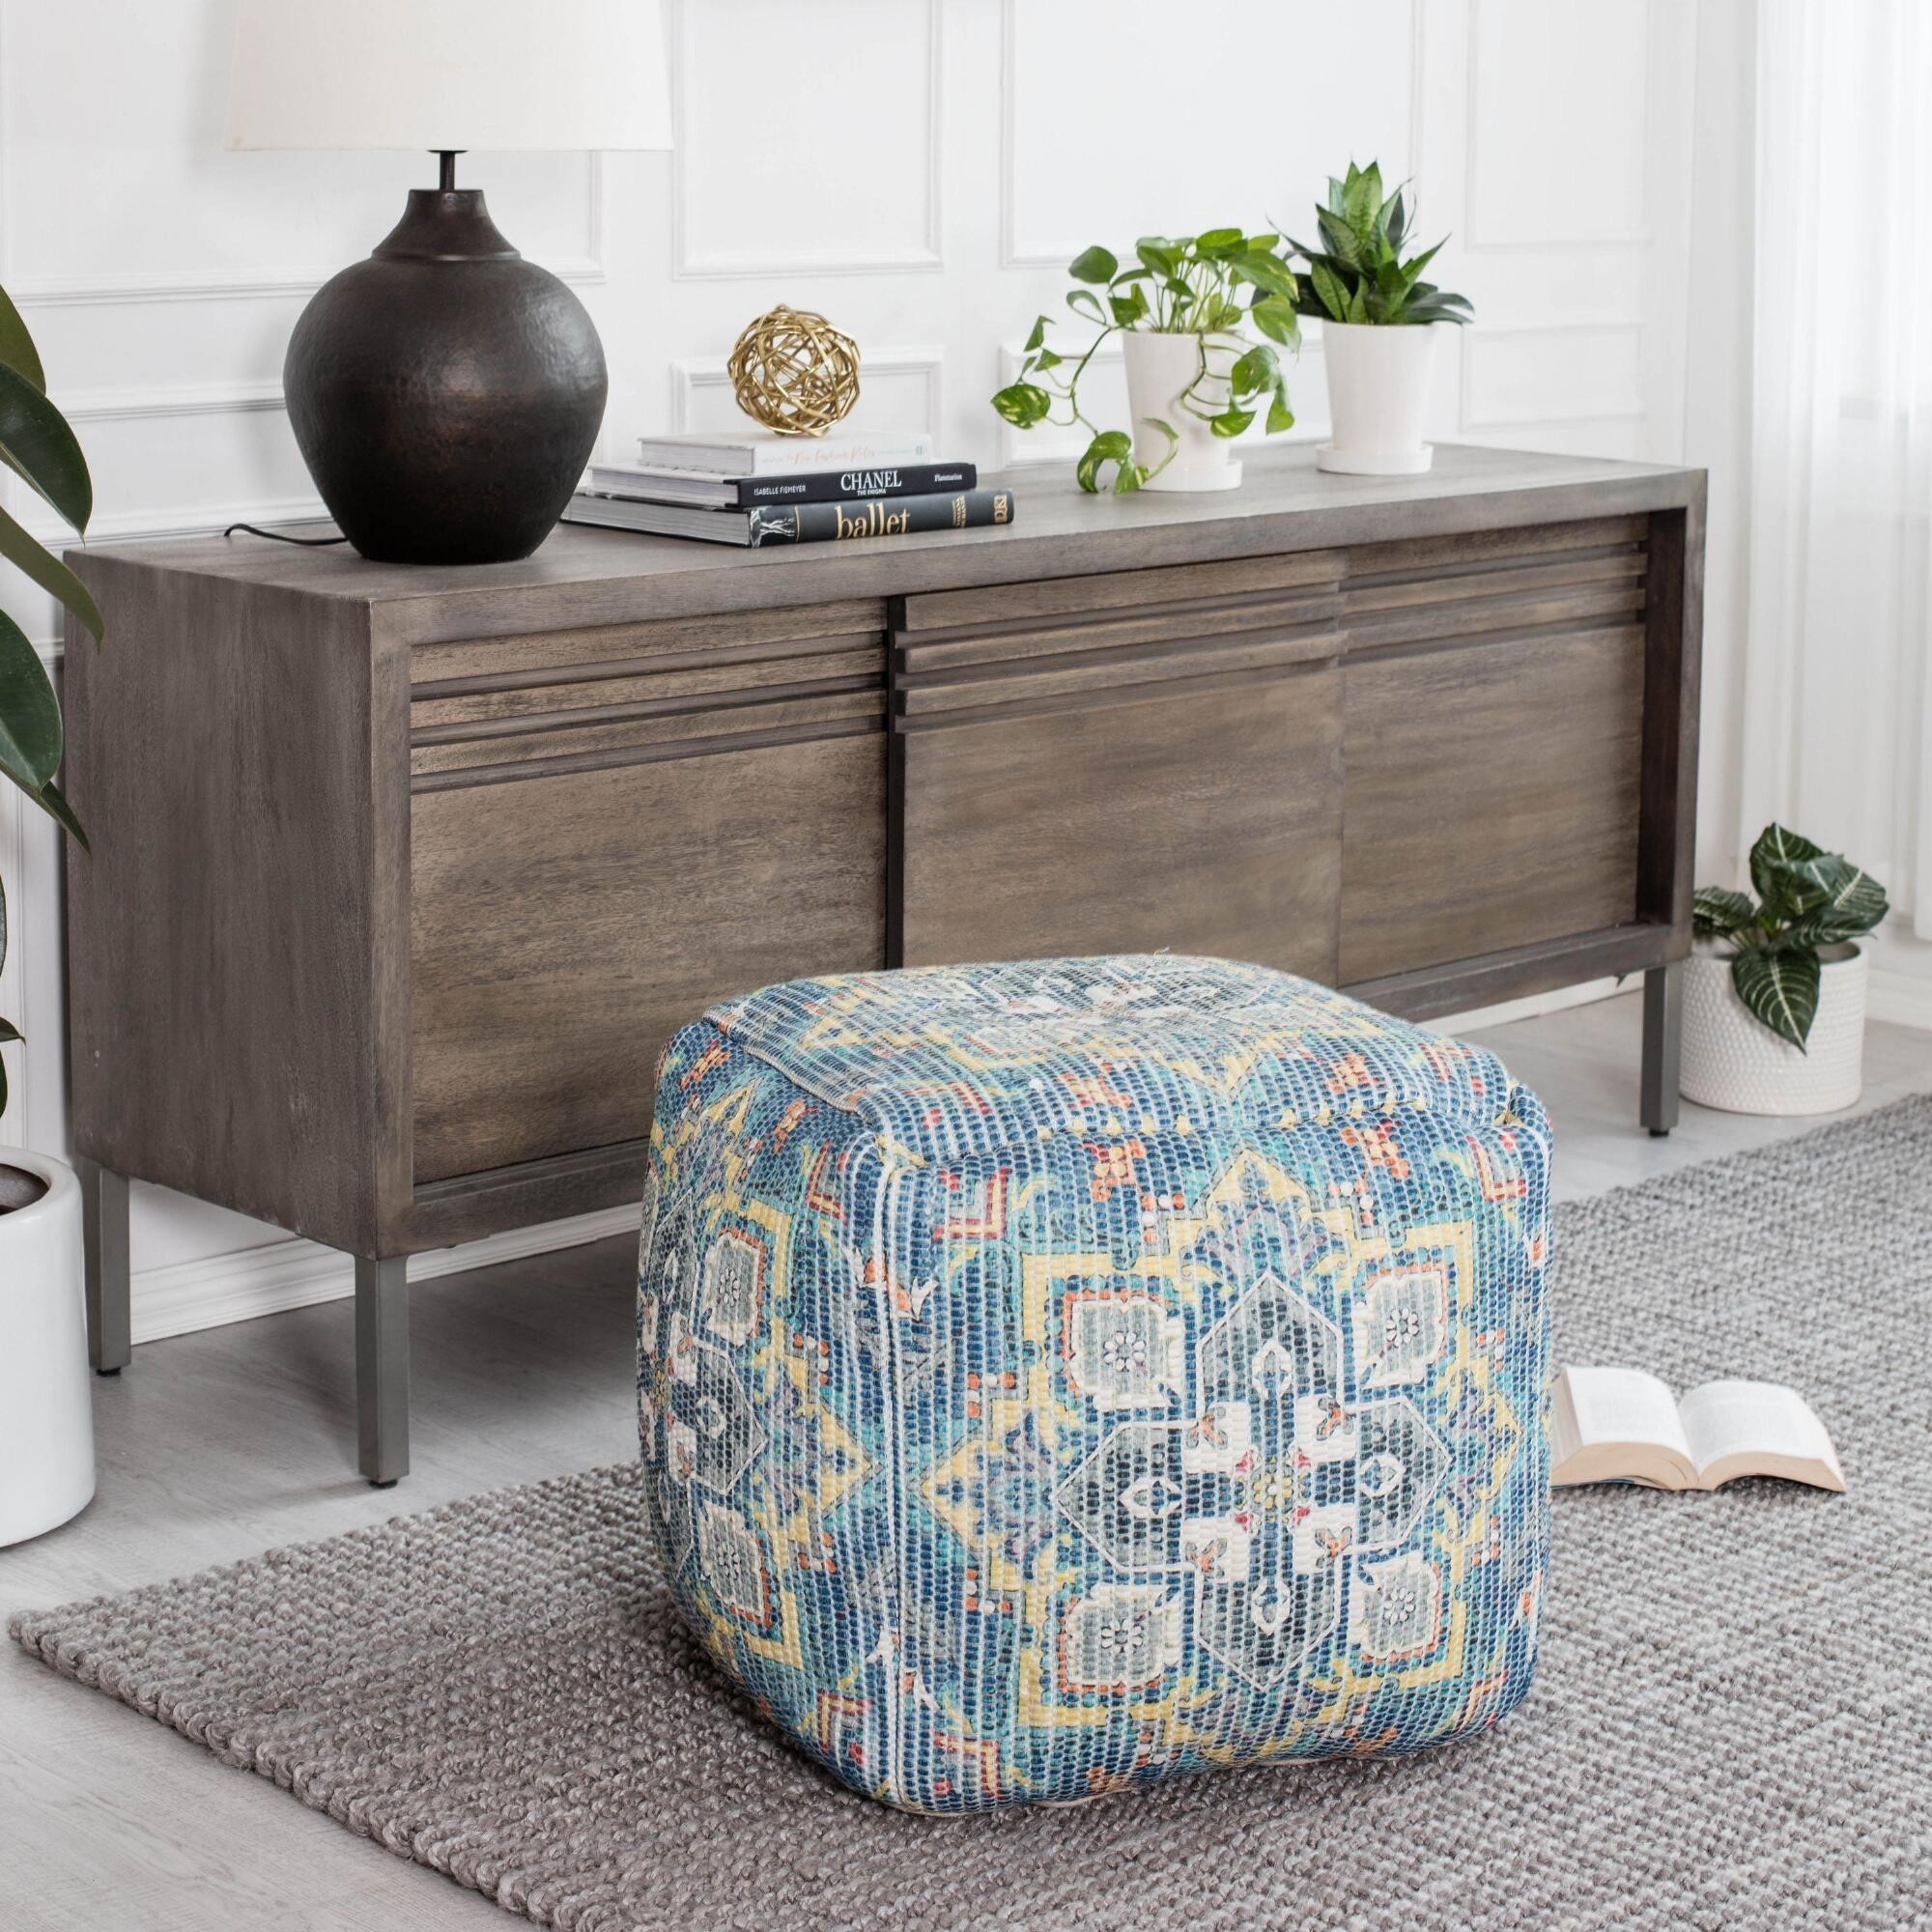 The pouf on the floor in a living room